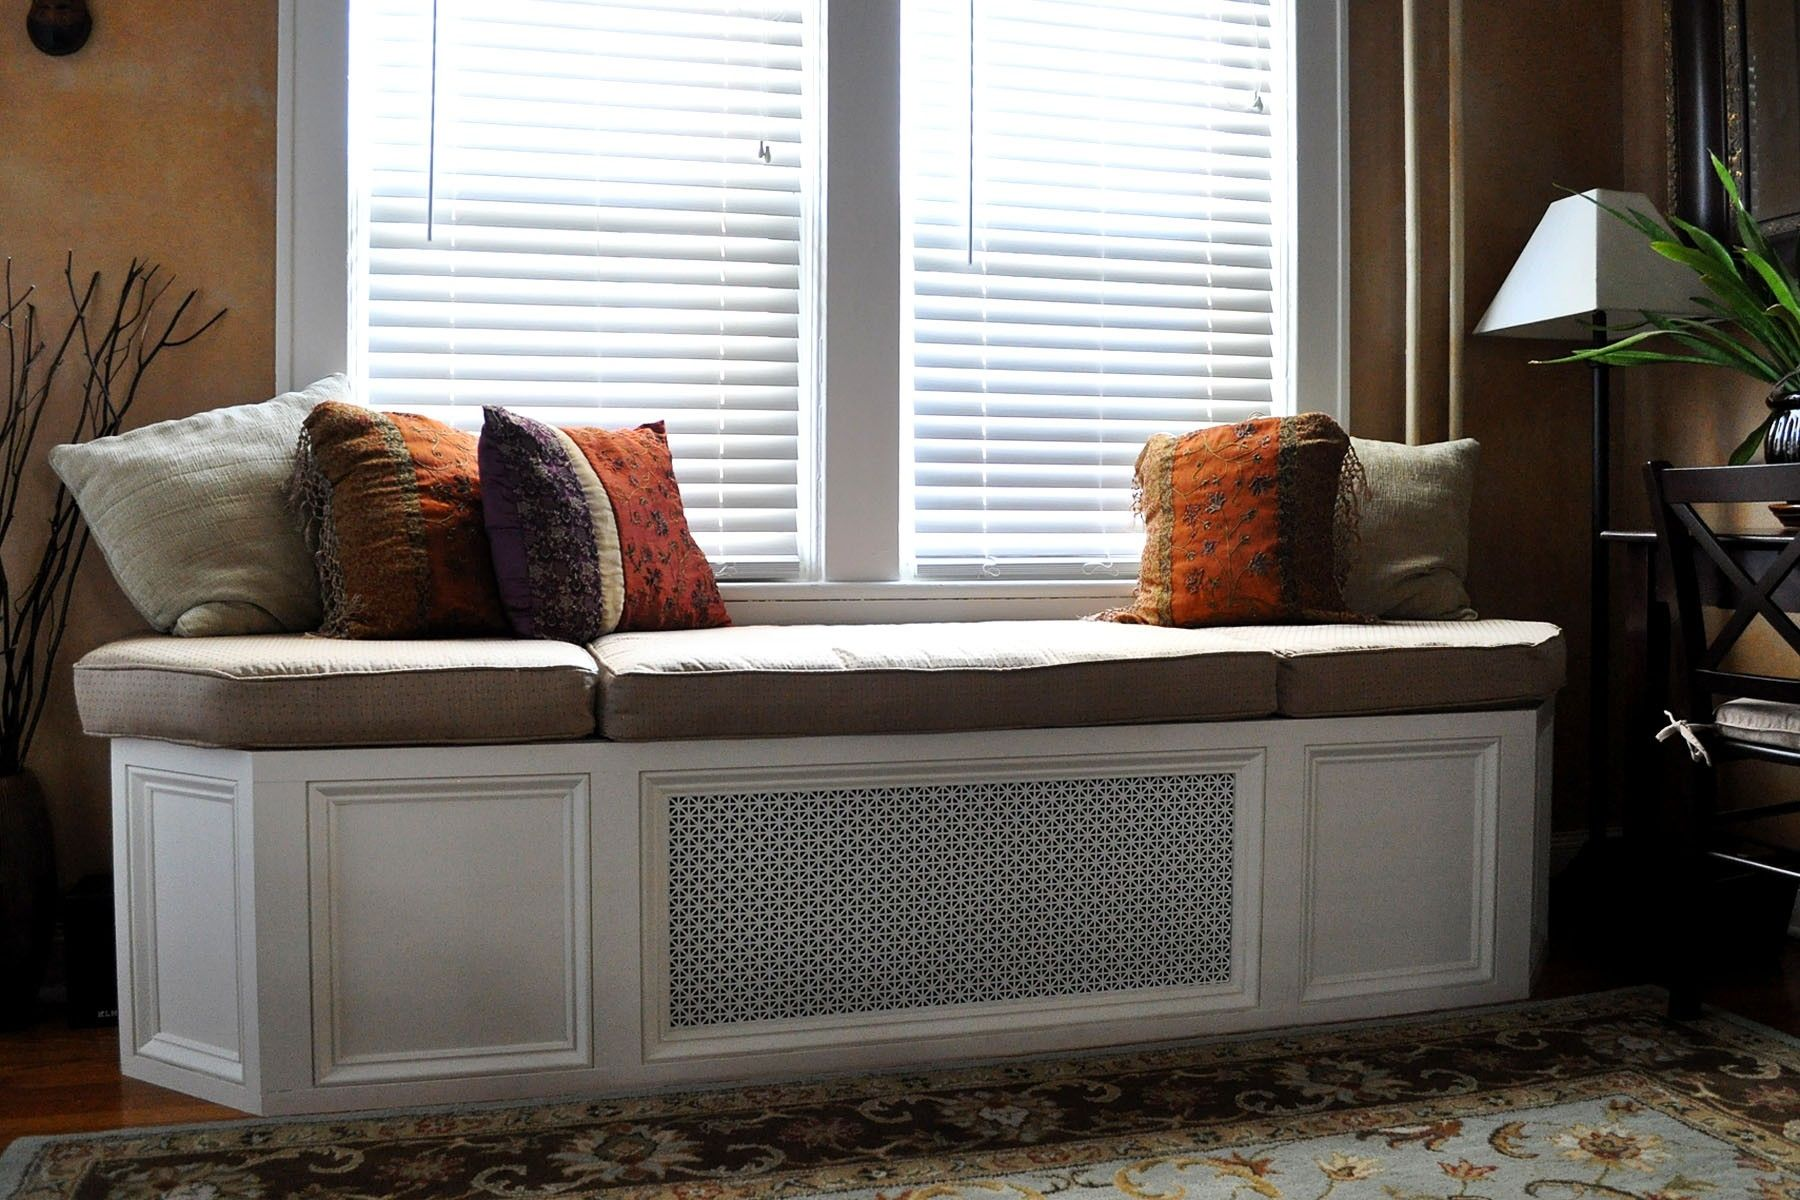 wood room bench dining ideas reclaimed tufted emmerson z cushion